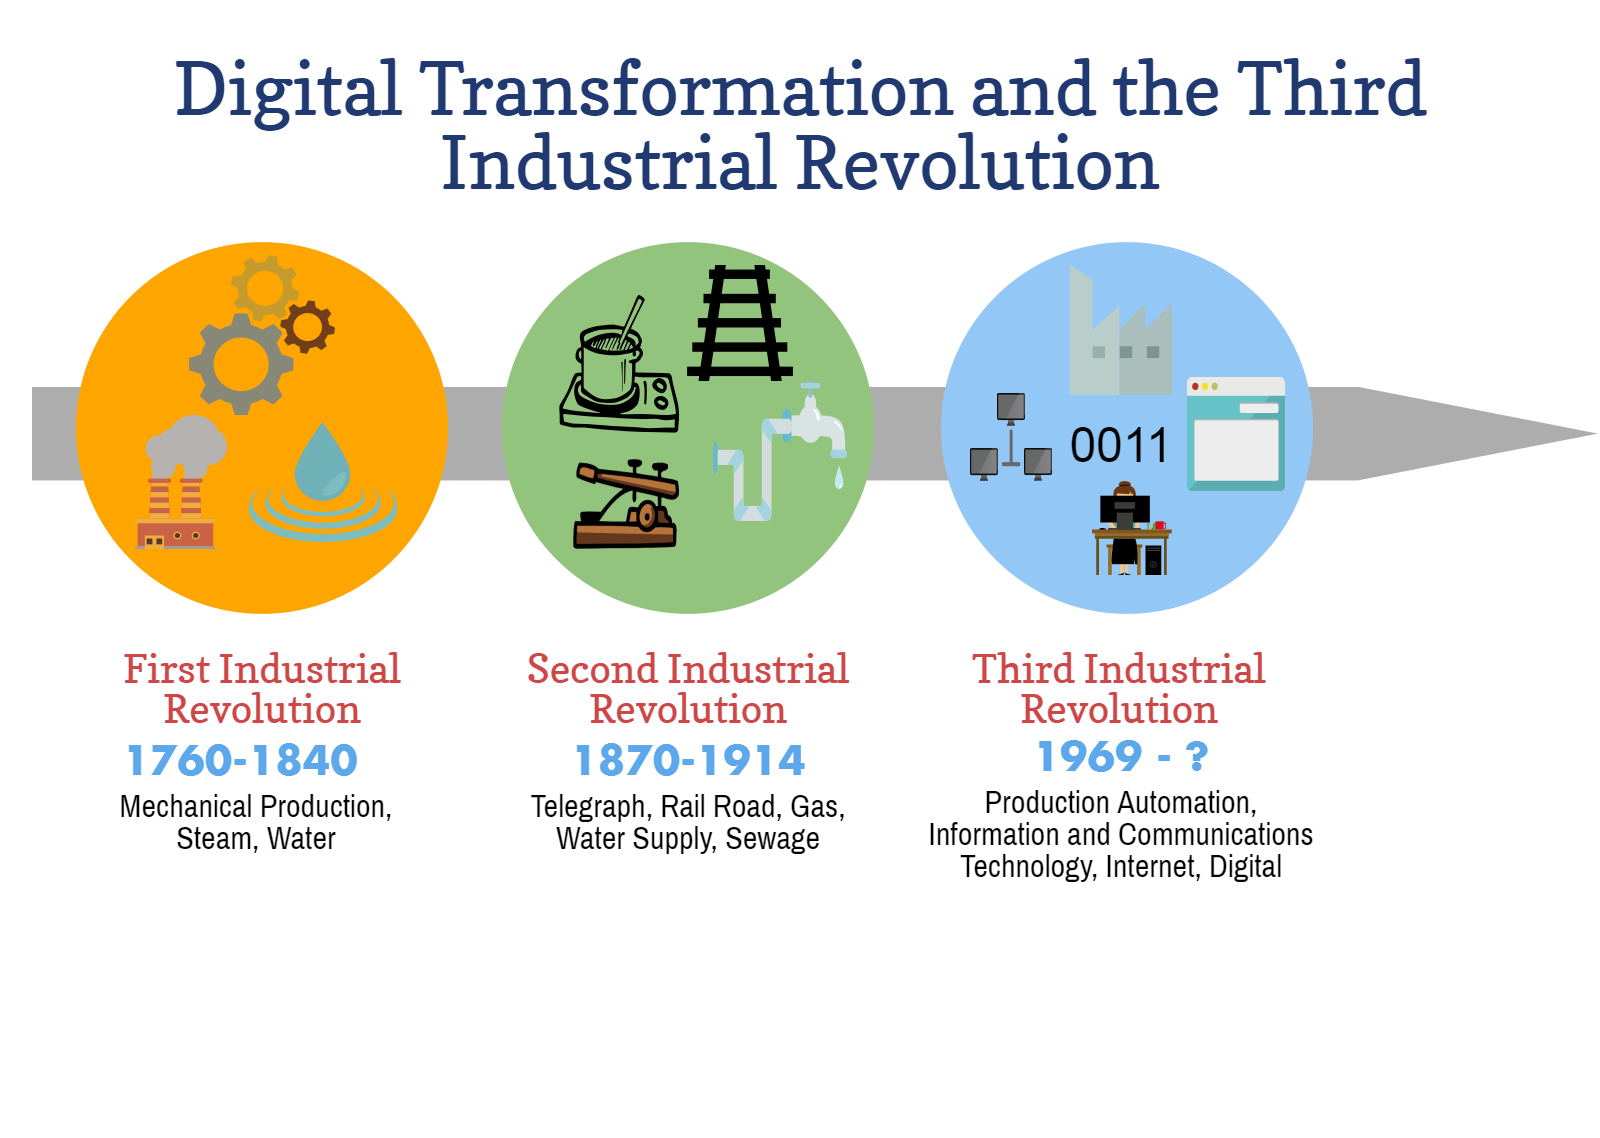 Digital Transformation and the Third Industrial Revolution